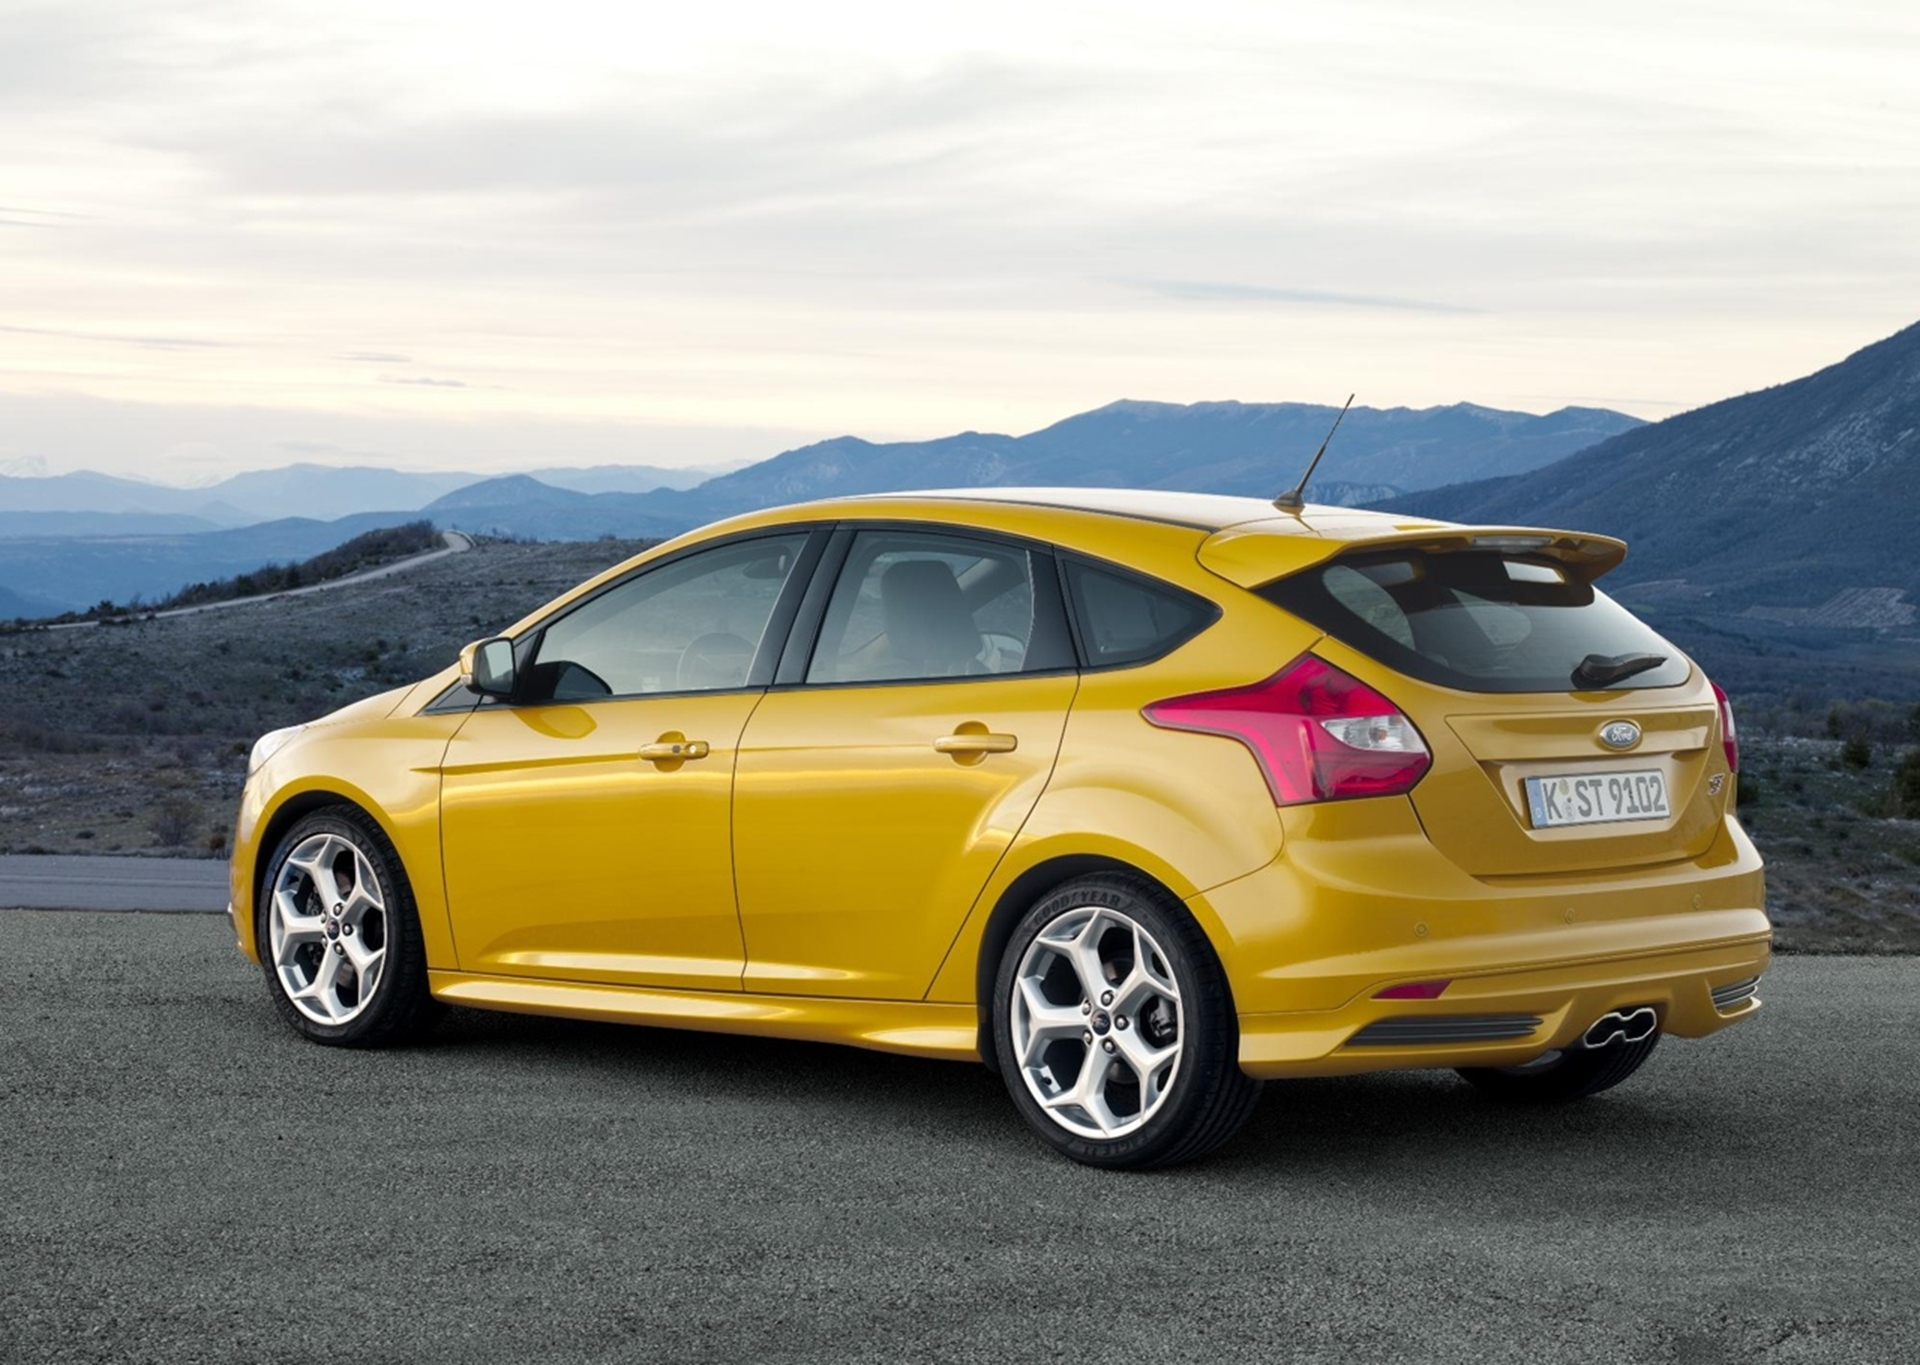 1st Fastest Car >> NEW FOCUS ST: FORD'S FASTEST FOCUS DEBUTS AS FIRST GLOBAL PERFORMANCE CAR